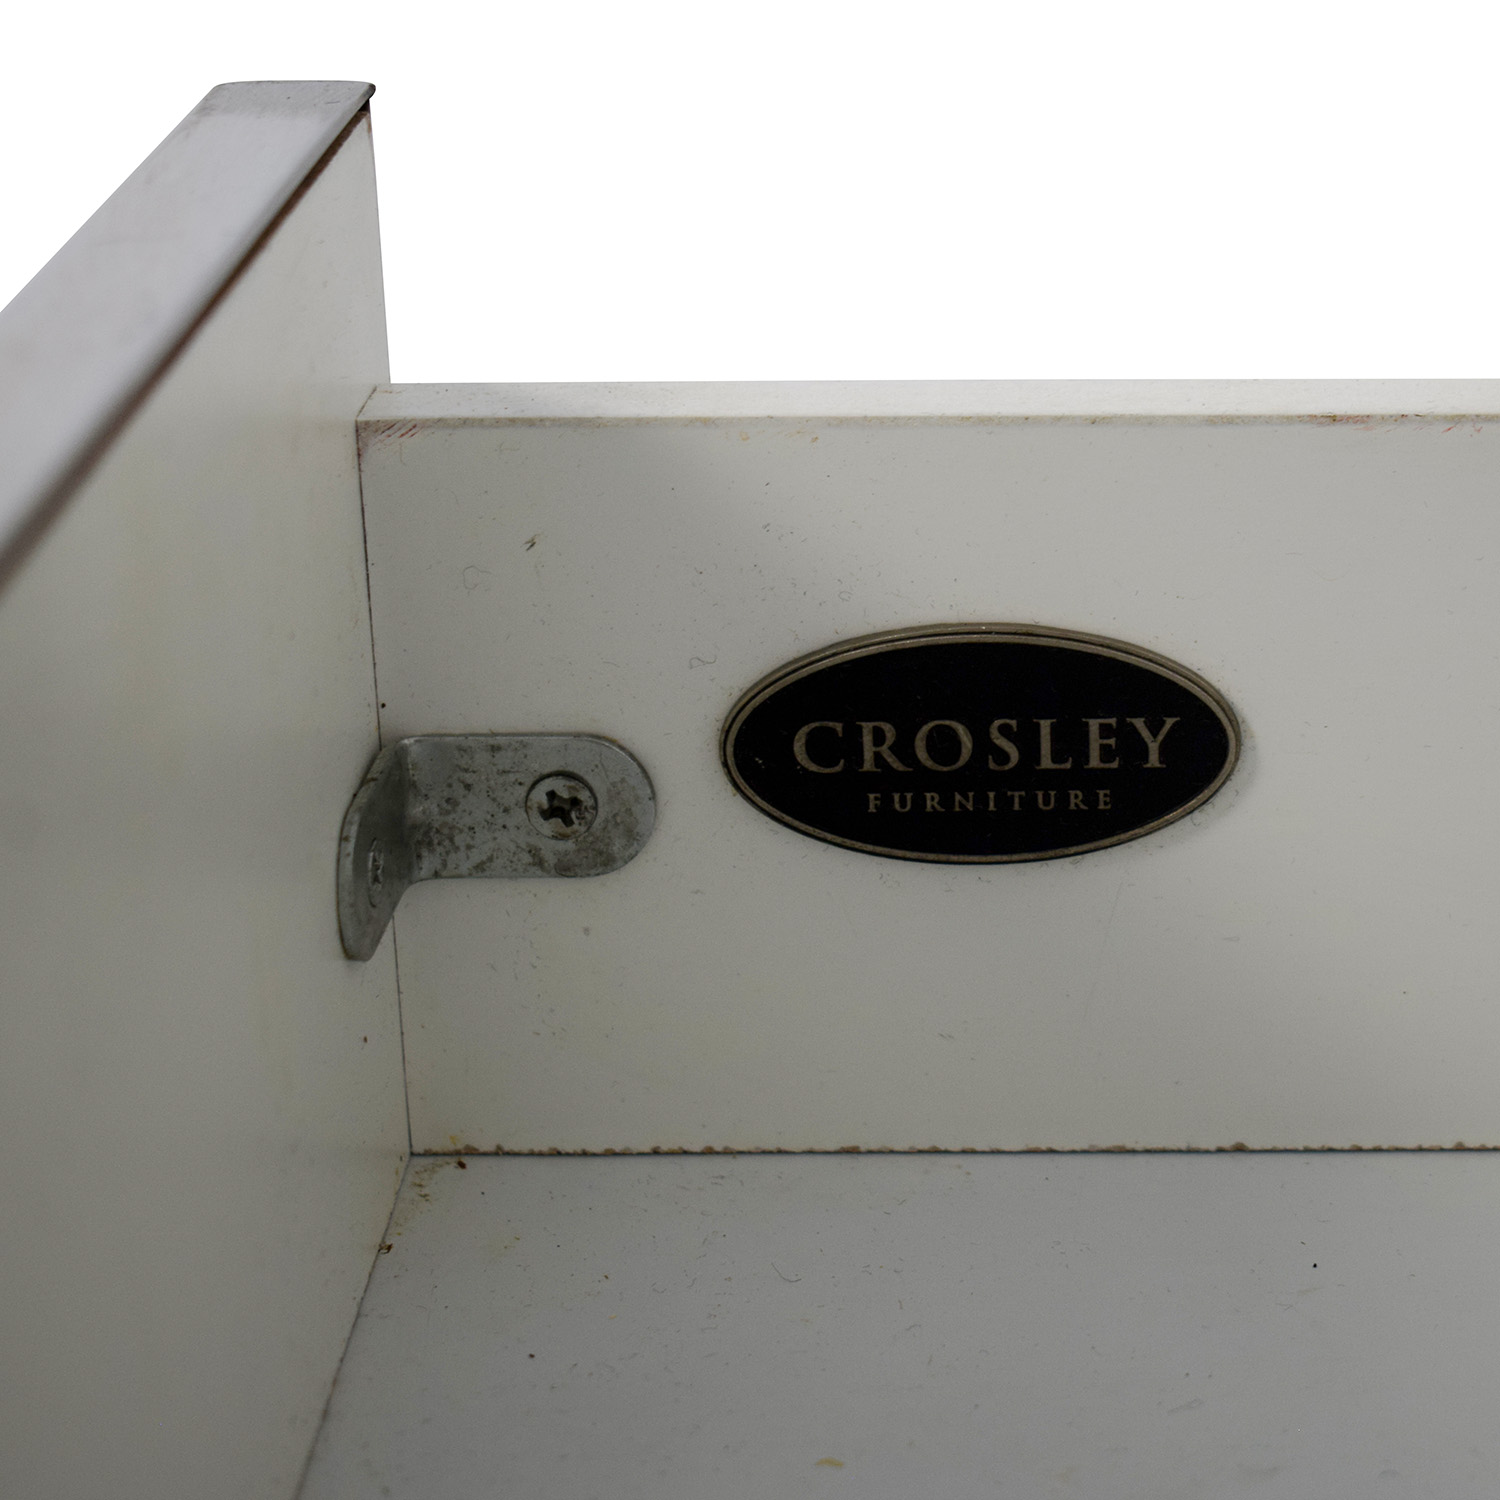 Crosley Furniture Crosley Furniture Stainless Steel Kitchen Cart Utility Tables